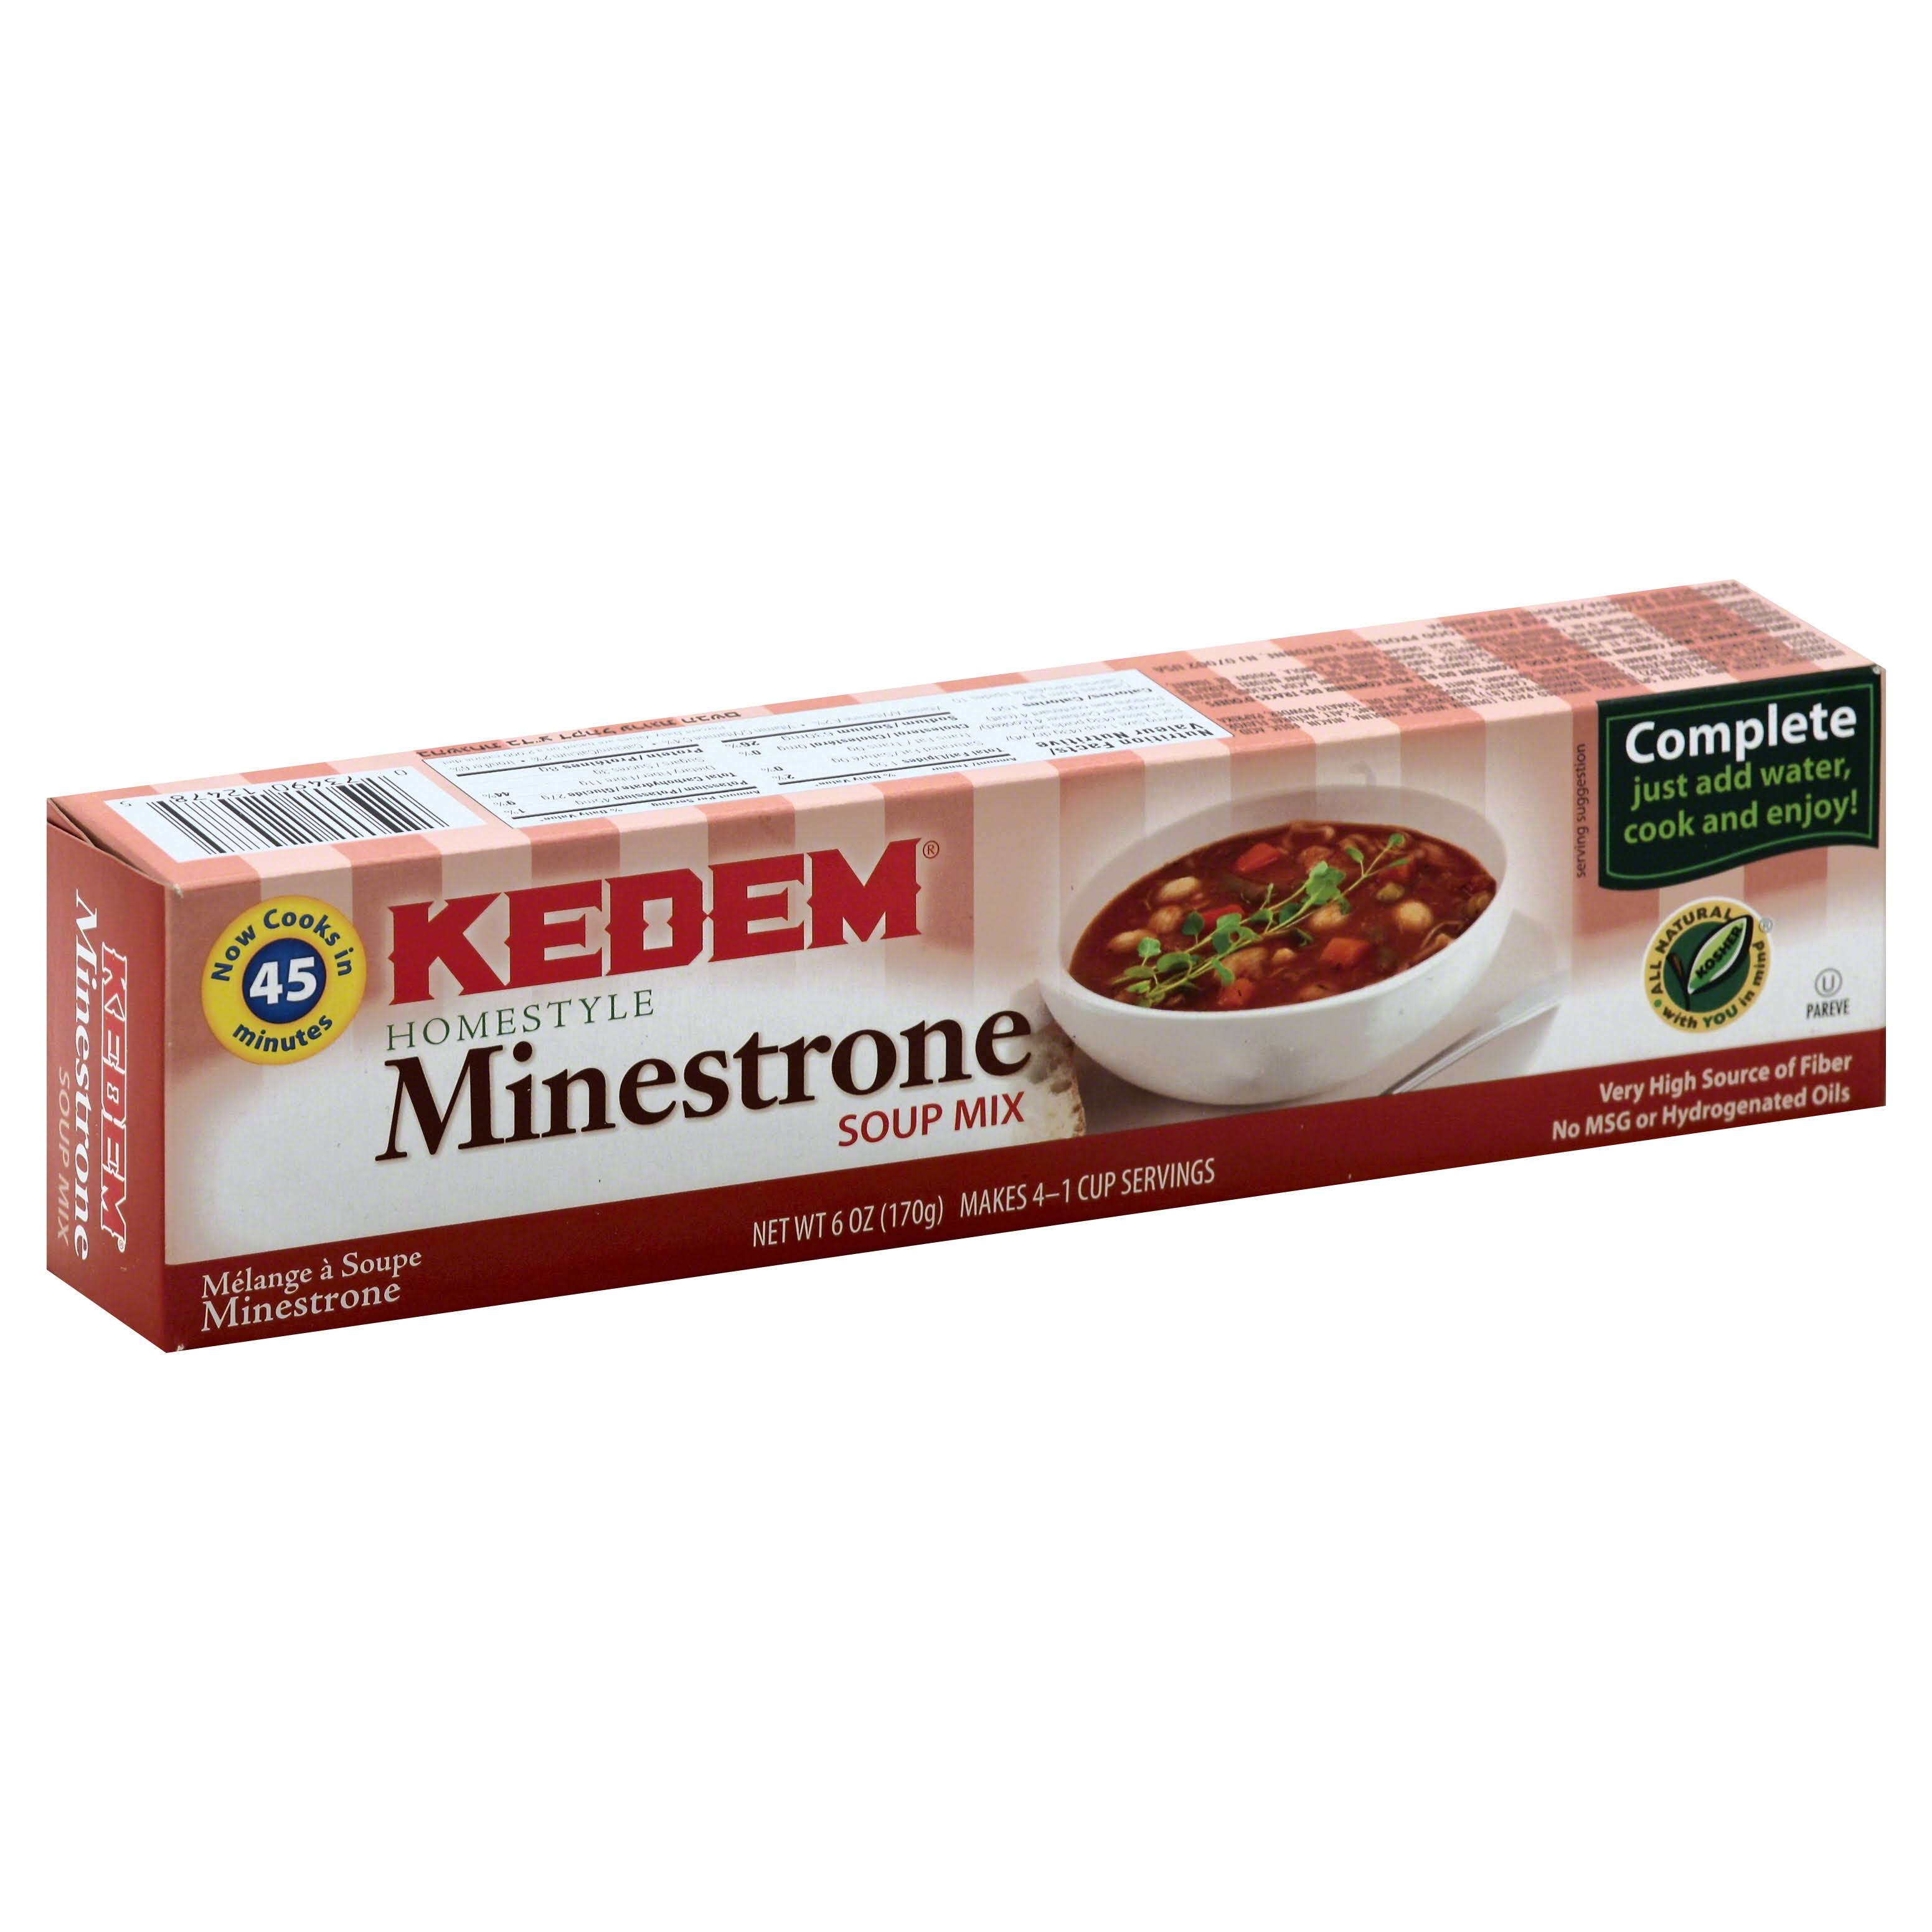 Kedem Minestrone Soup Mix - 6oz